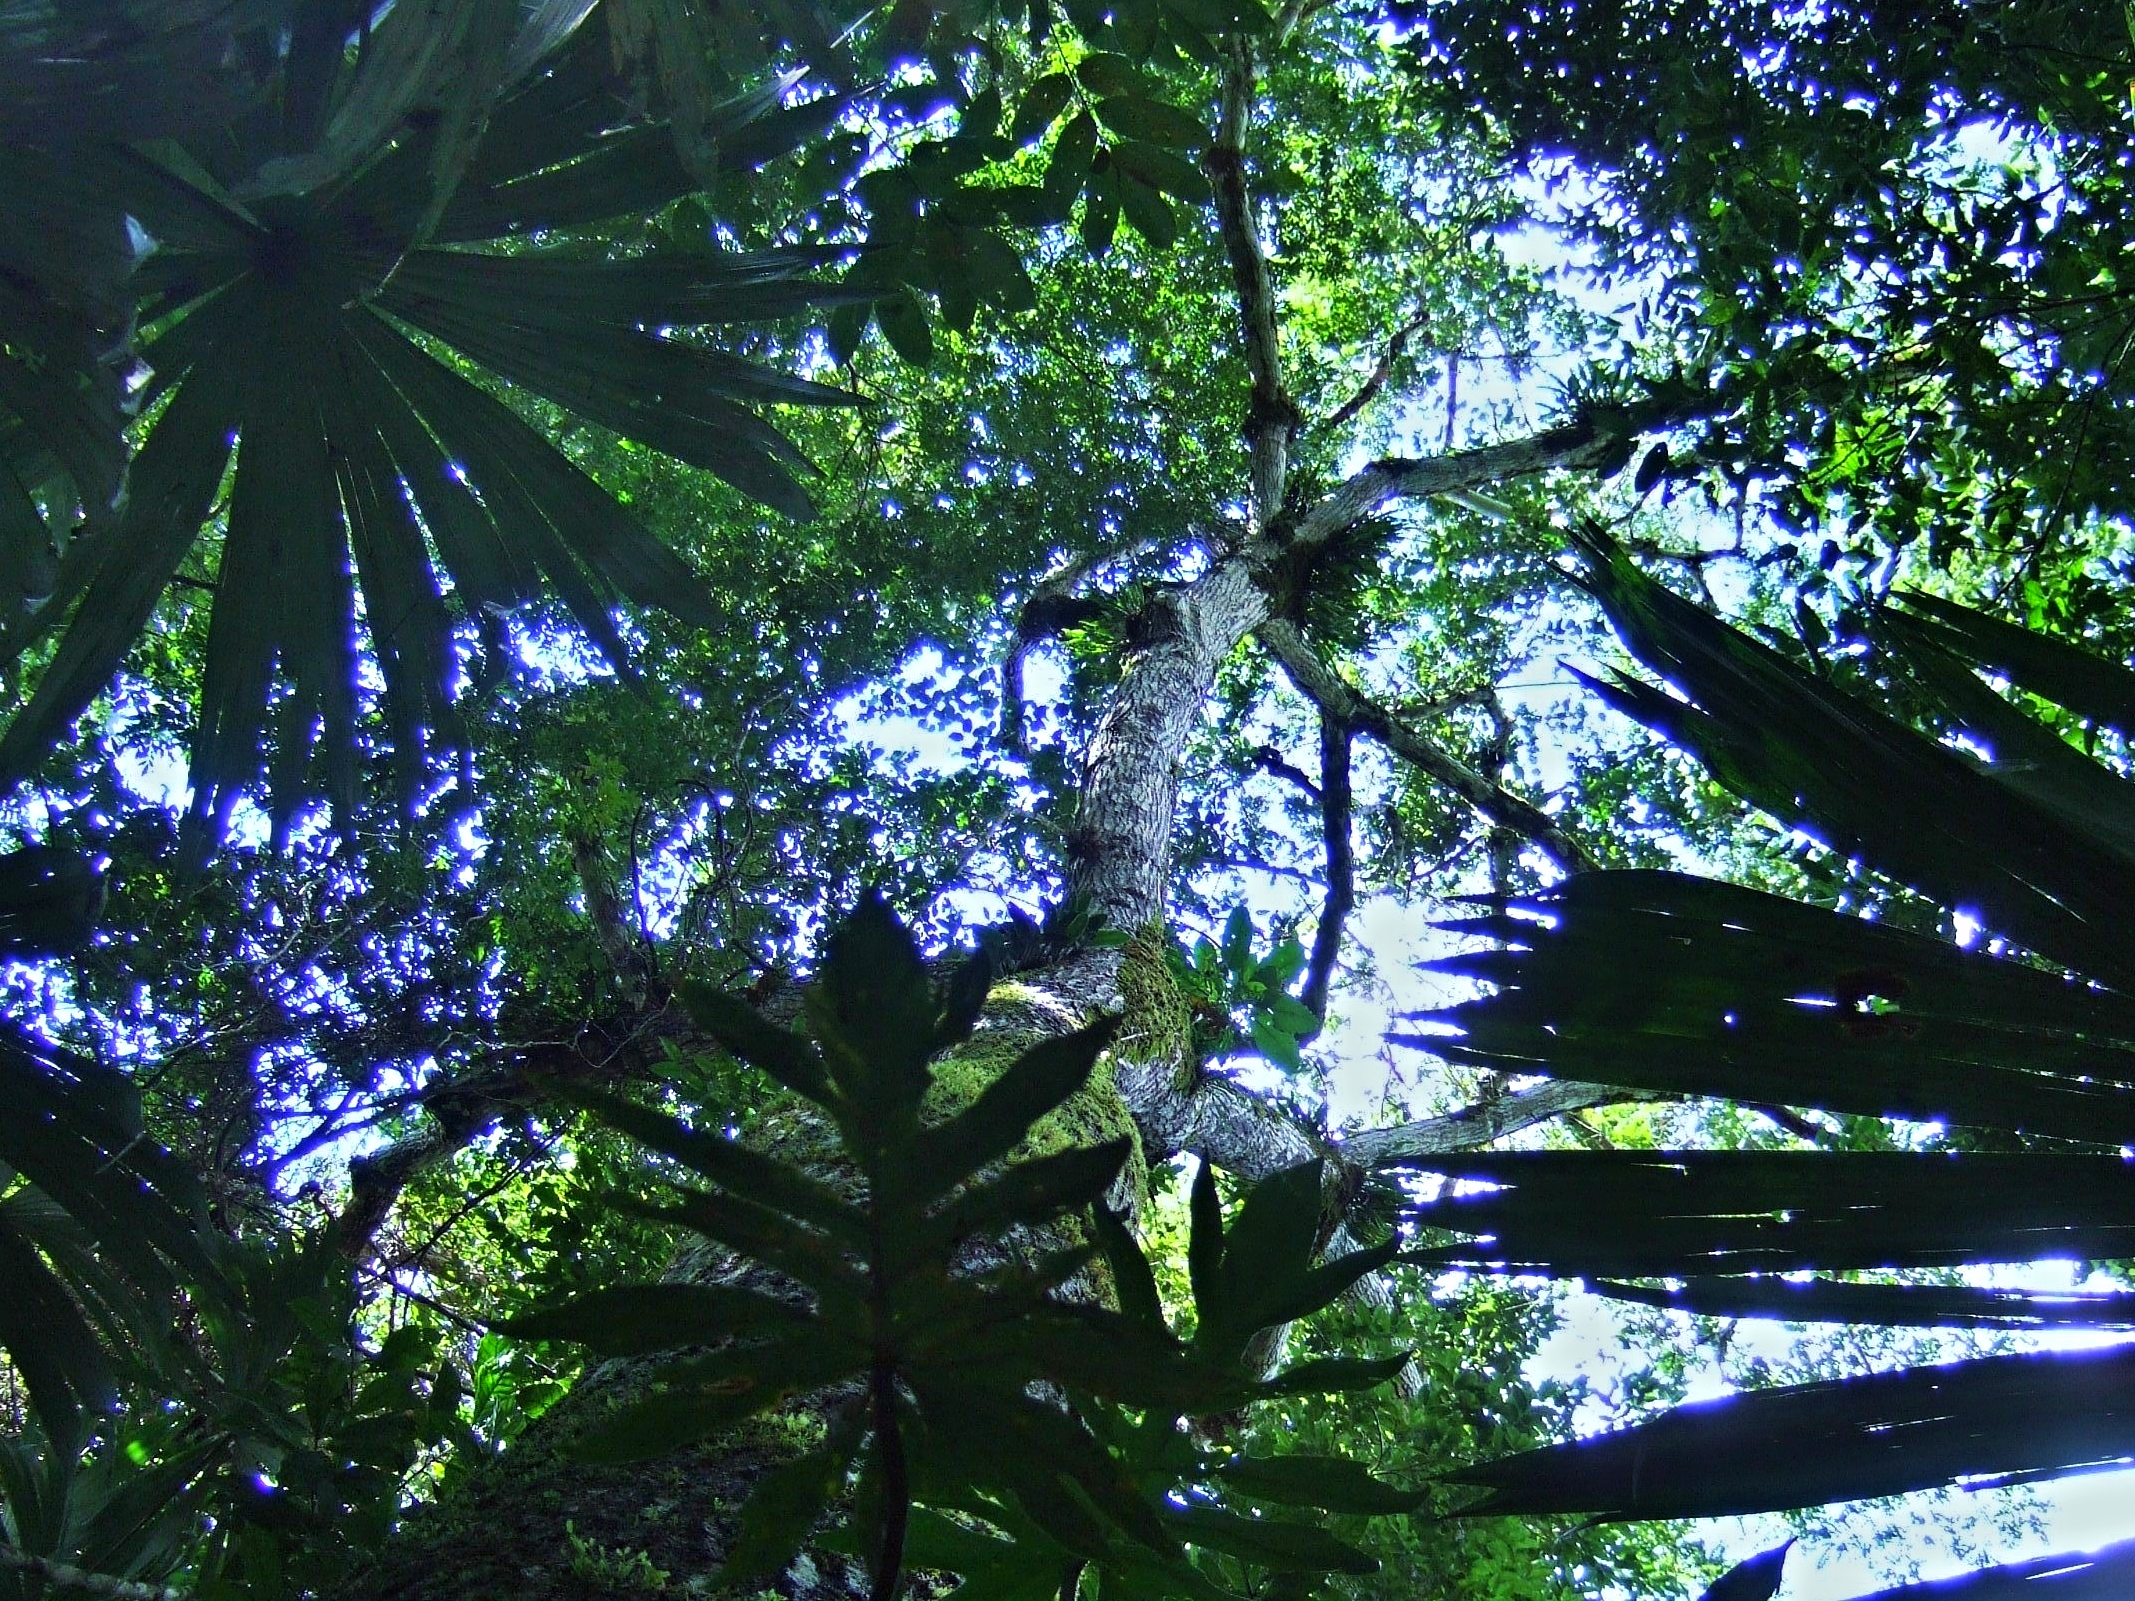 Cayo District Rain-forest - Belize Jungle Vacation - Belize Vacation Packages - SabreWing Travel